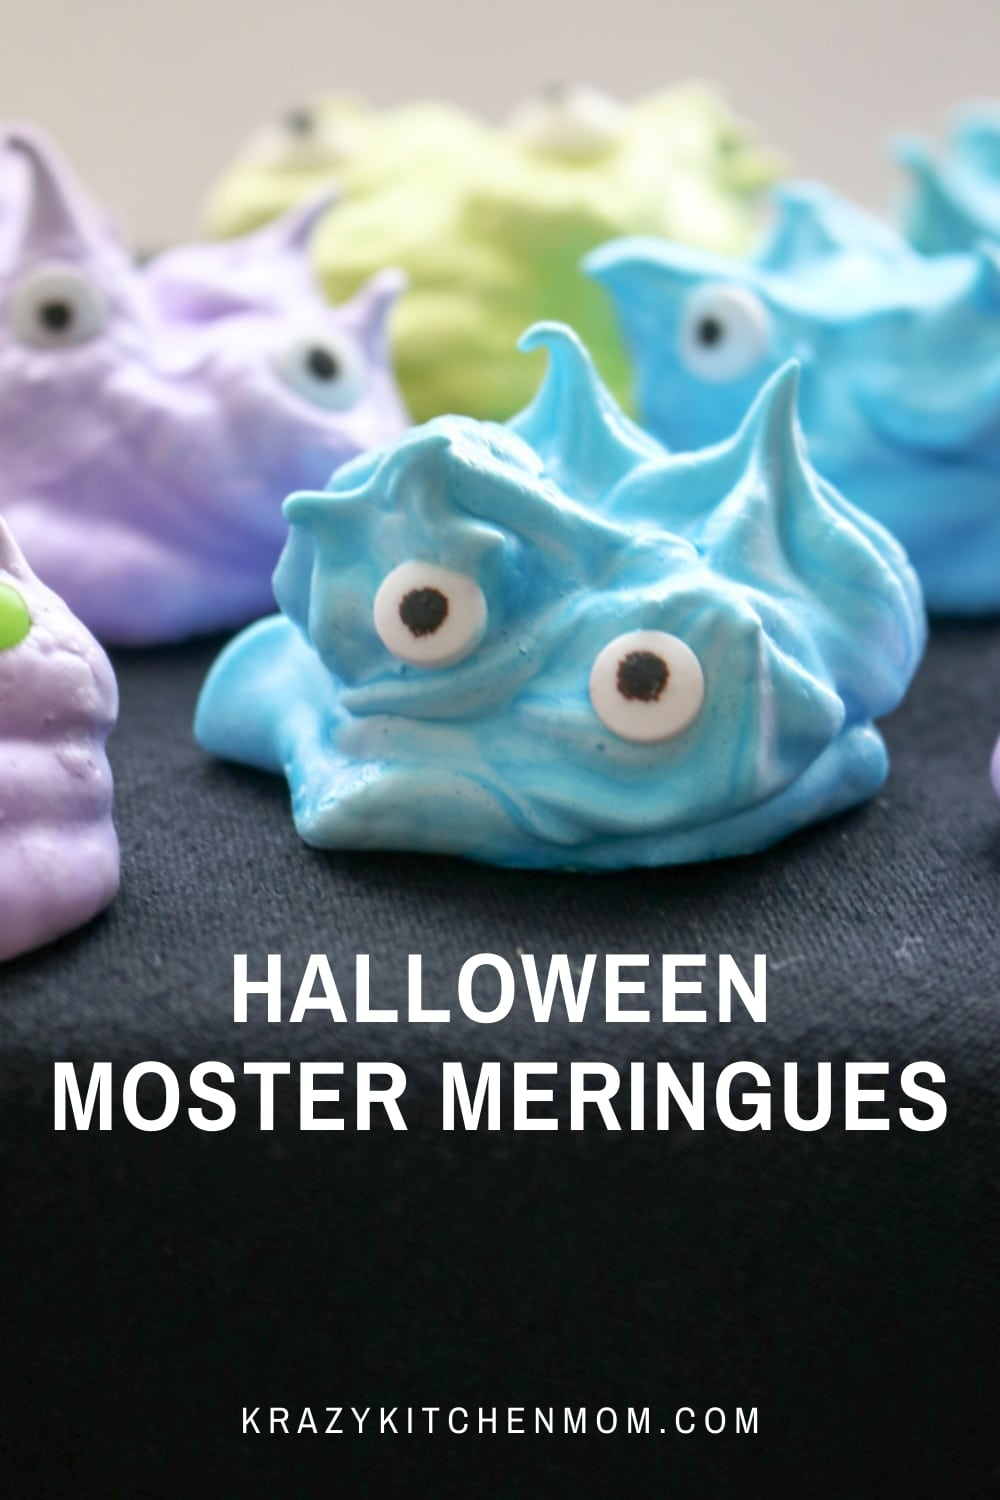 These meringue cookies are melt-in-your-mouth sweet little treats dressed up as cute eyeball monsters for Halloween. via @krazykitchenmom